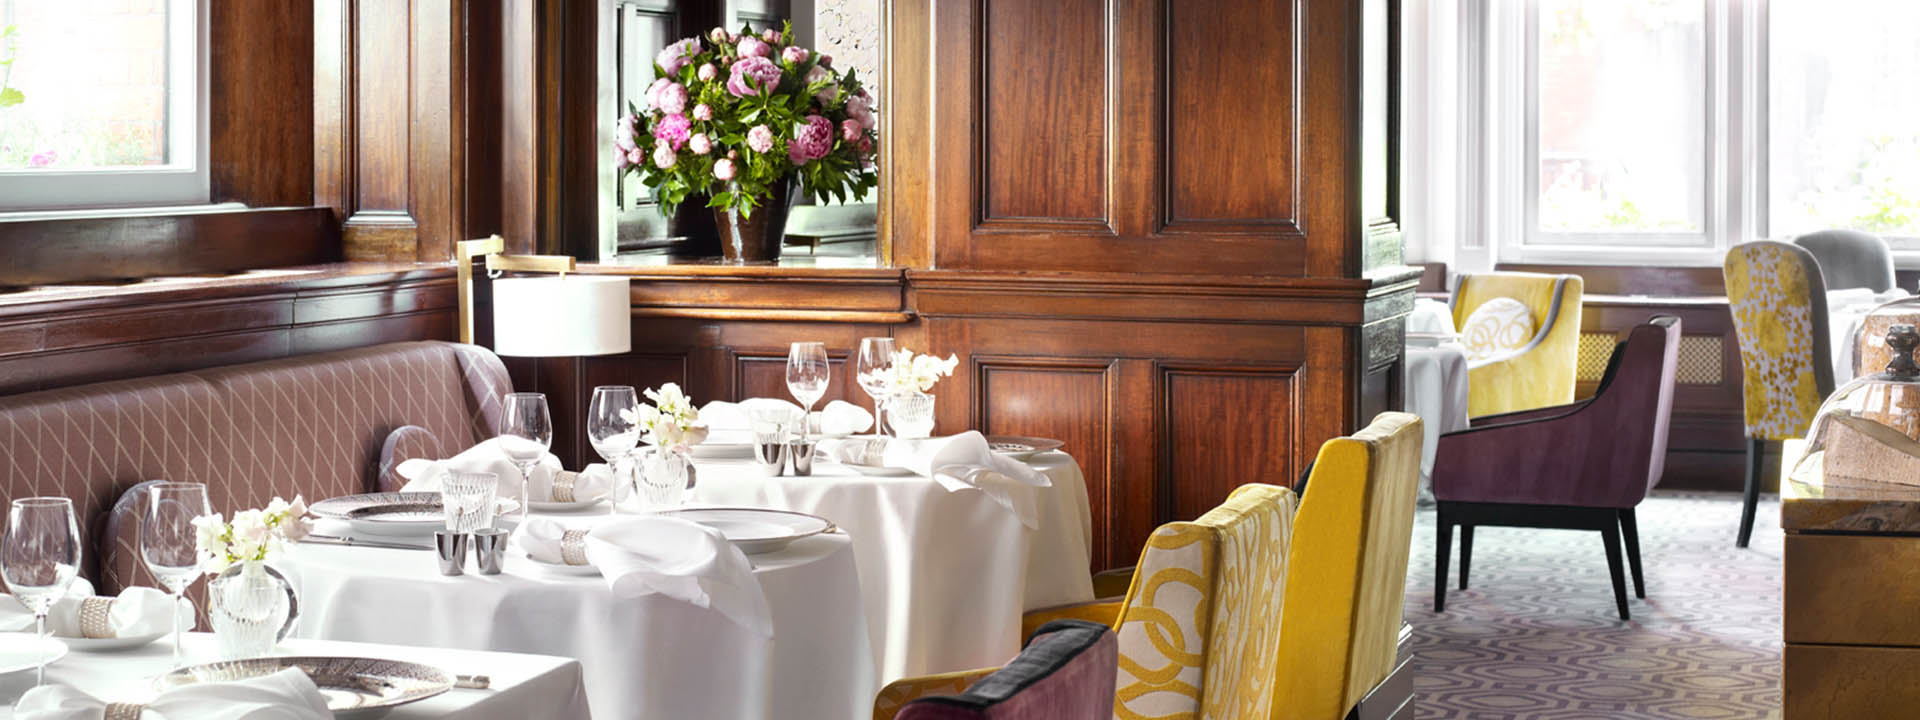 Helene Darroze At The Connaught Two Michelin Star Dining The